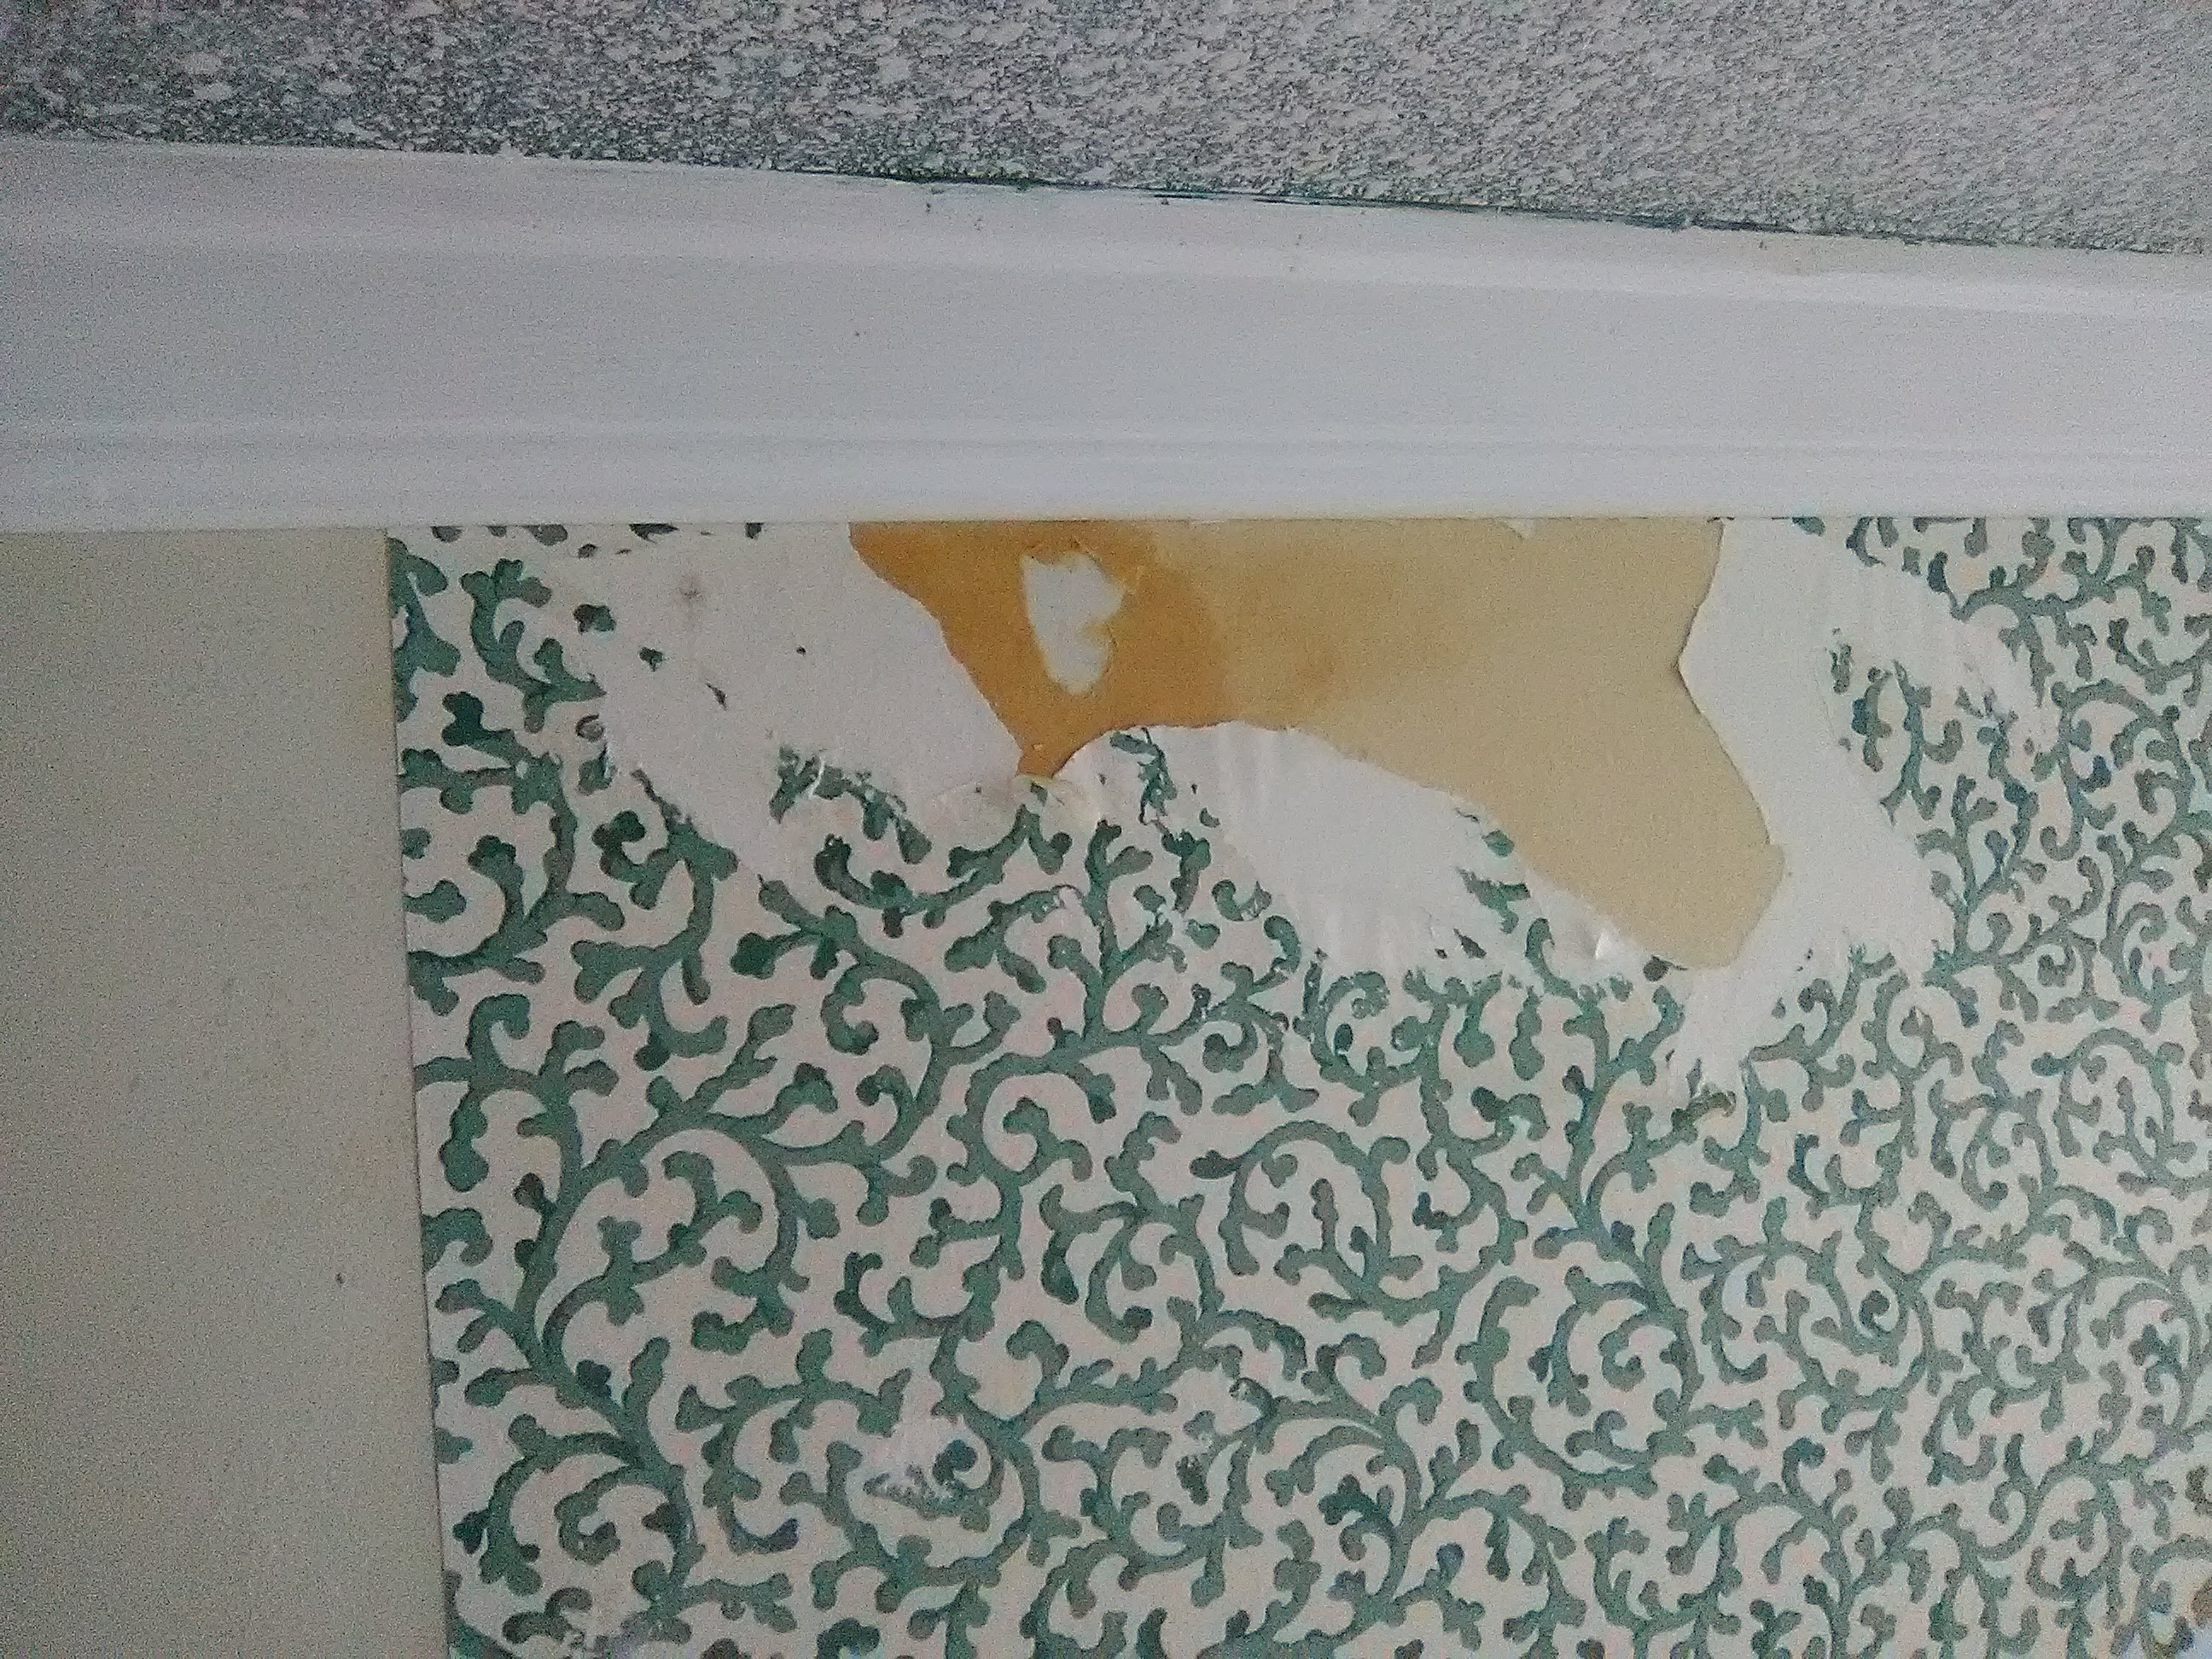 This Hall Bathroom In A 1955 Ranch Style Home In The Briargrove /  Tanglewood Neighborhood Of Houston Was Damaged By A Roof Leak During  Hurricane Harvey.